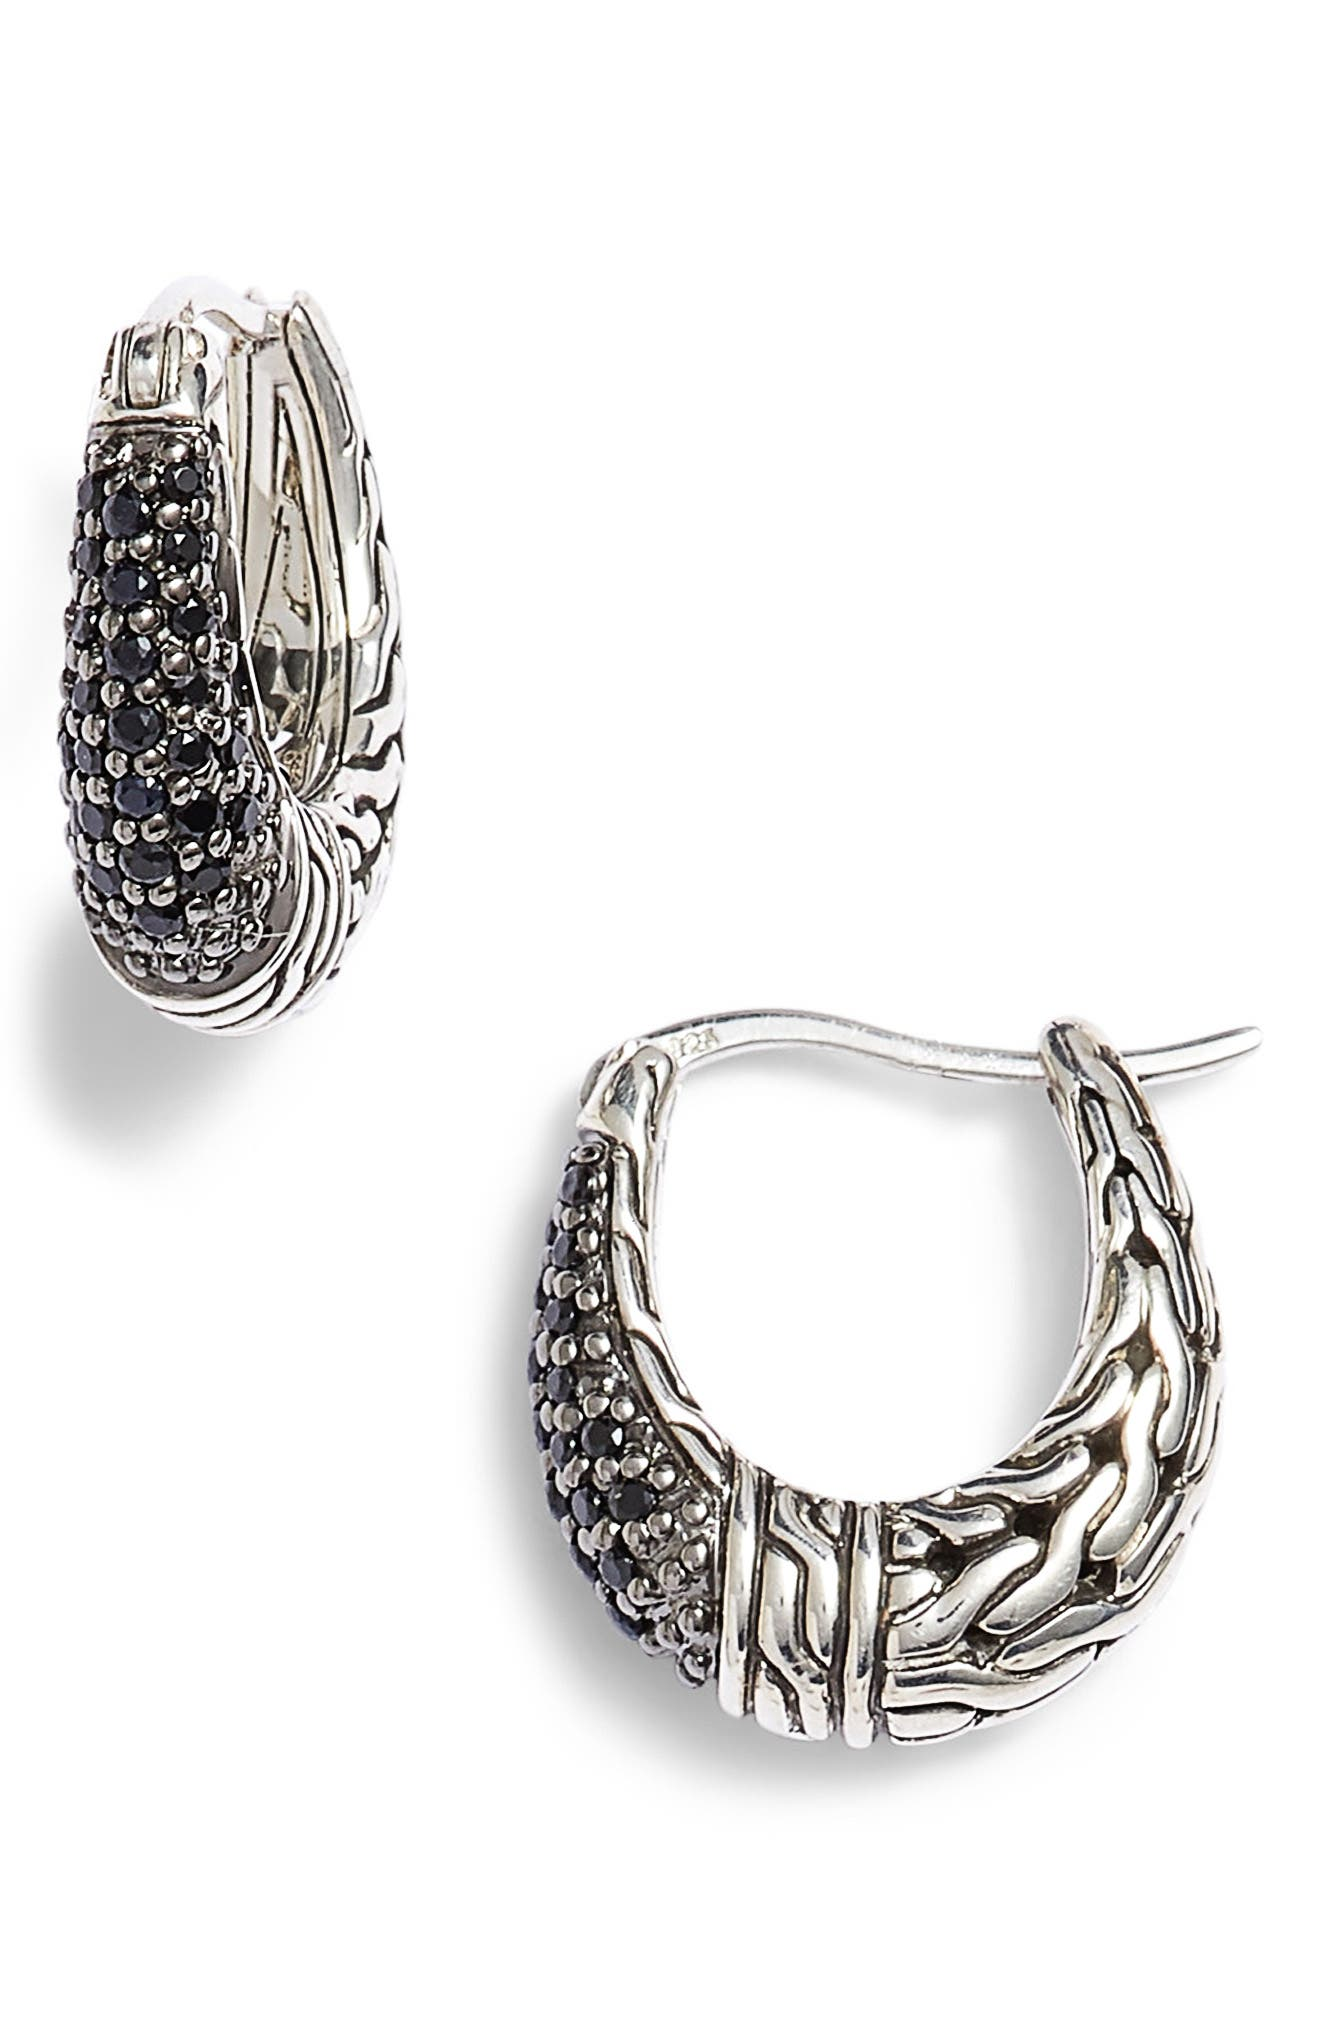 JOHN HARDY, Classic Chain Gemstone Hoop Earrings, Main thumbnail 1, color, SILVER/ BLACK SAPPHIRE